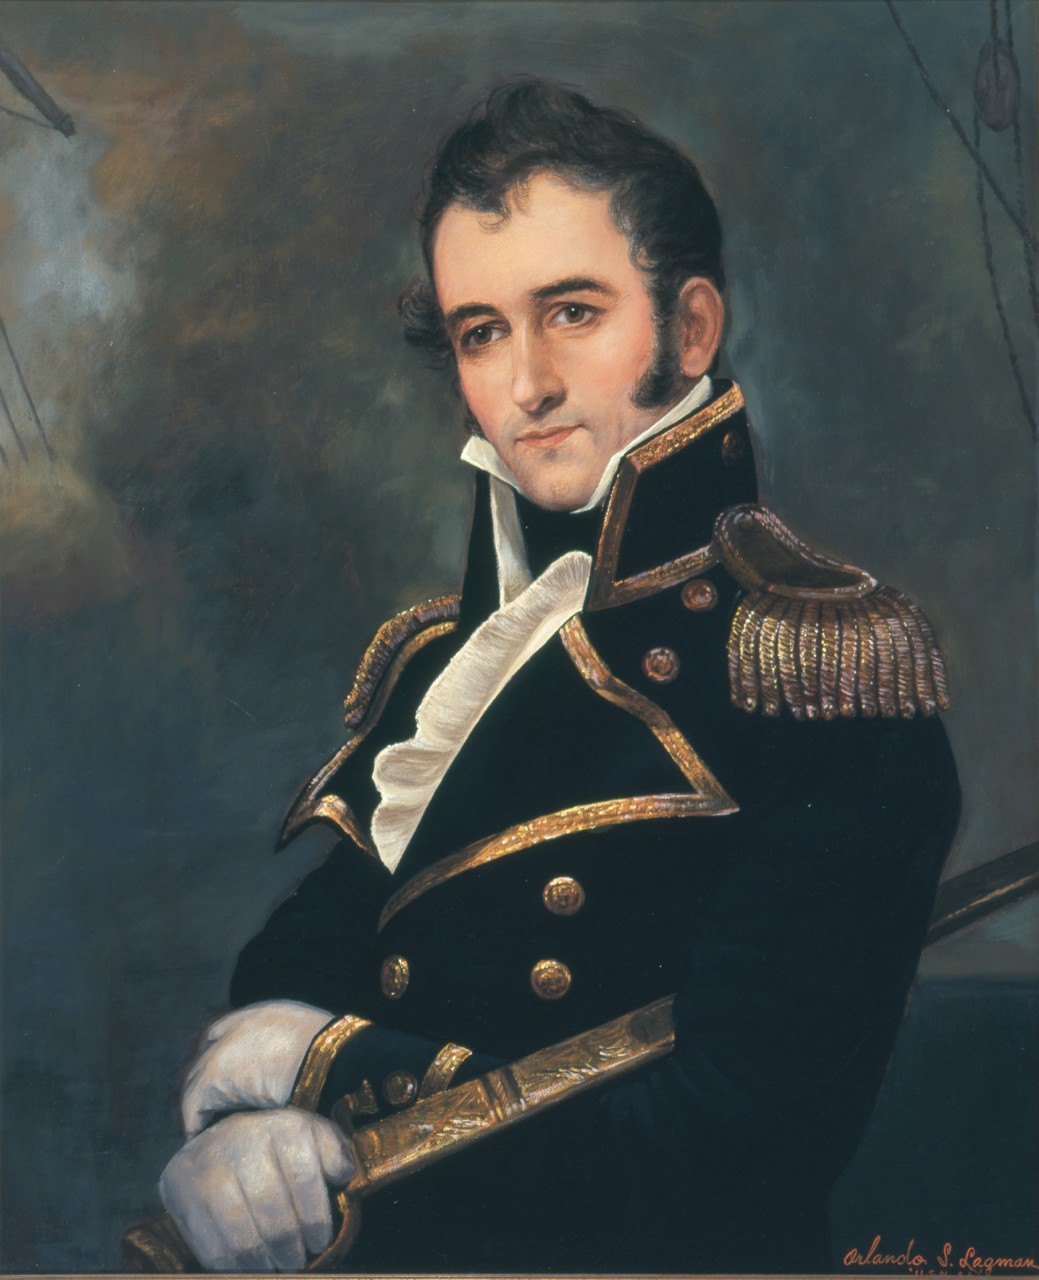 Portrait of David Porter, he is wearing a naval uniform and holding a sword with a smokey background